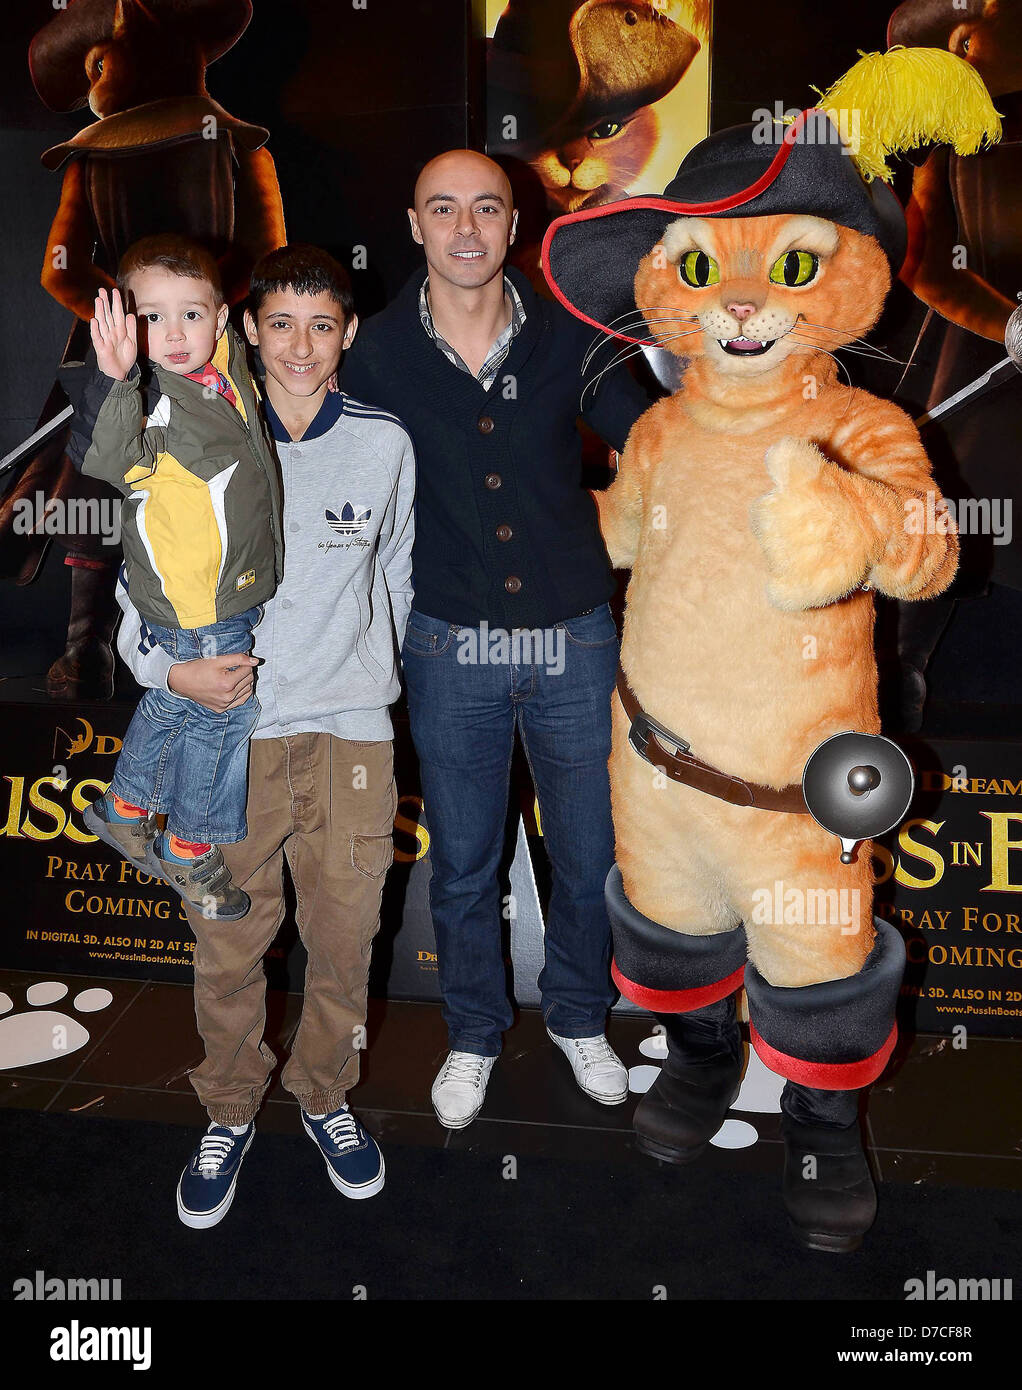 Shannon Shah, Andrew Shah, Ray Shah, at the Irish Premiere of 'Puss In Boots' at The Savoy - Arrivals Dublin, - Stock Image